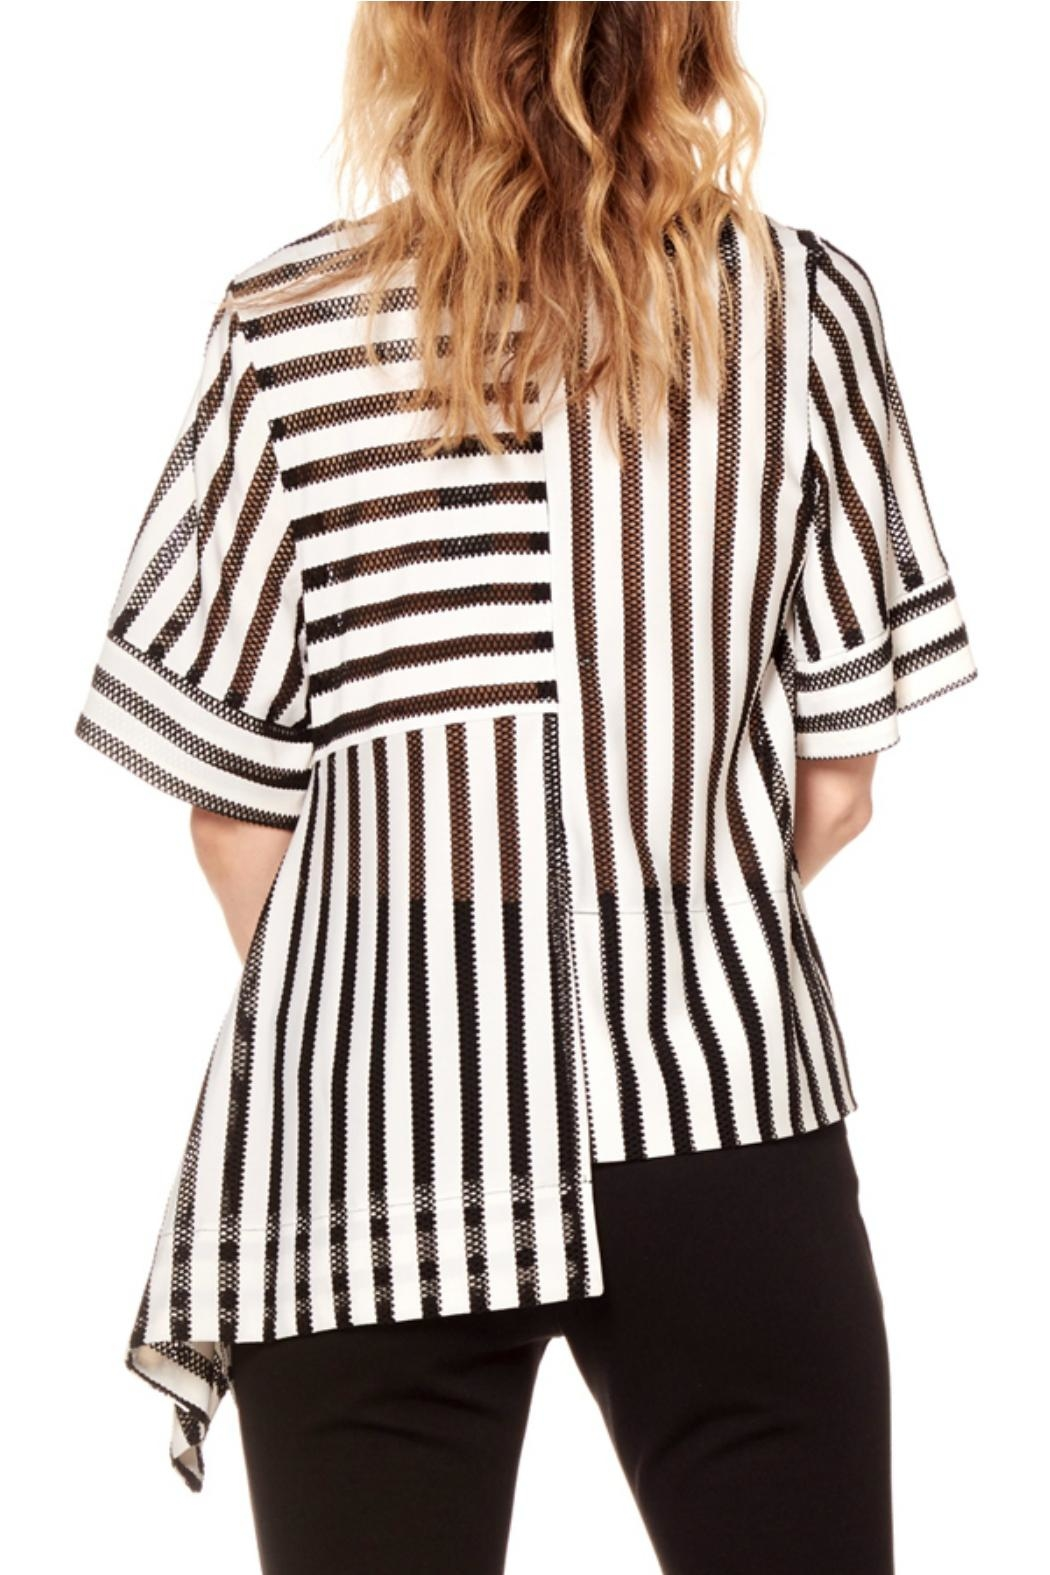 Gracia Striped Asymmetrical Top - Front Full Image